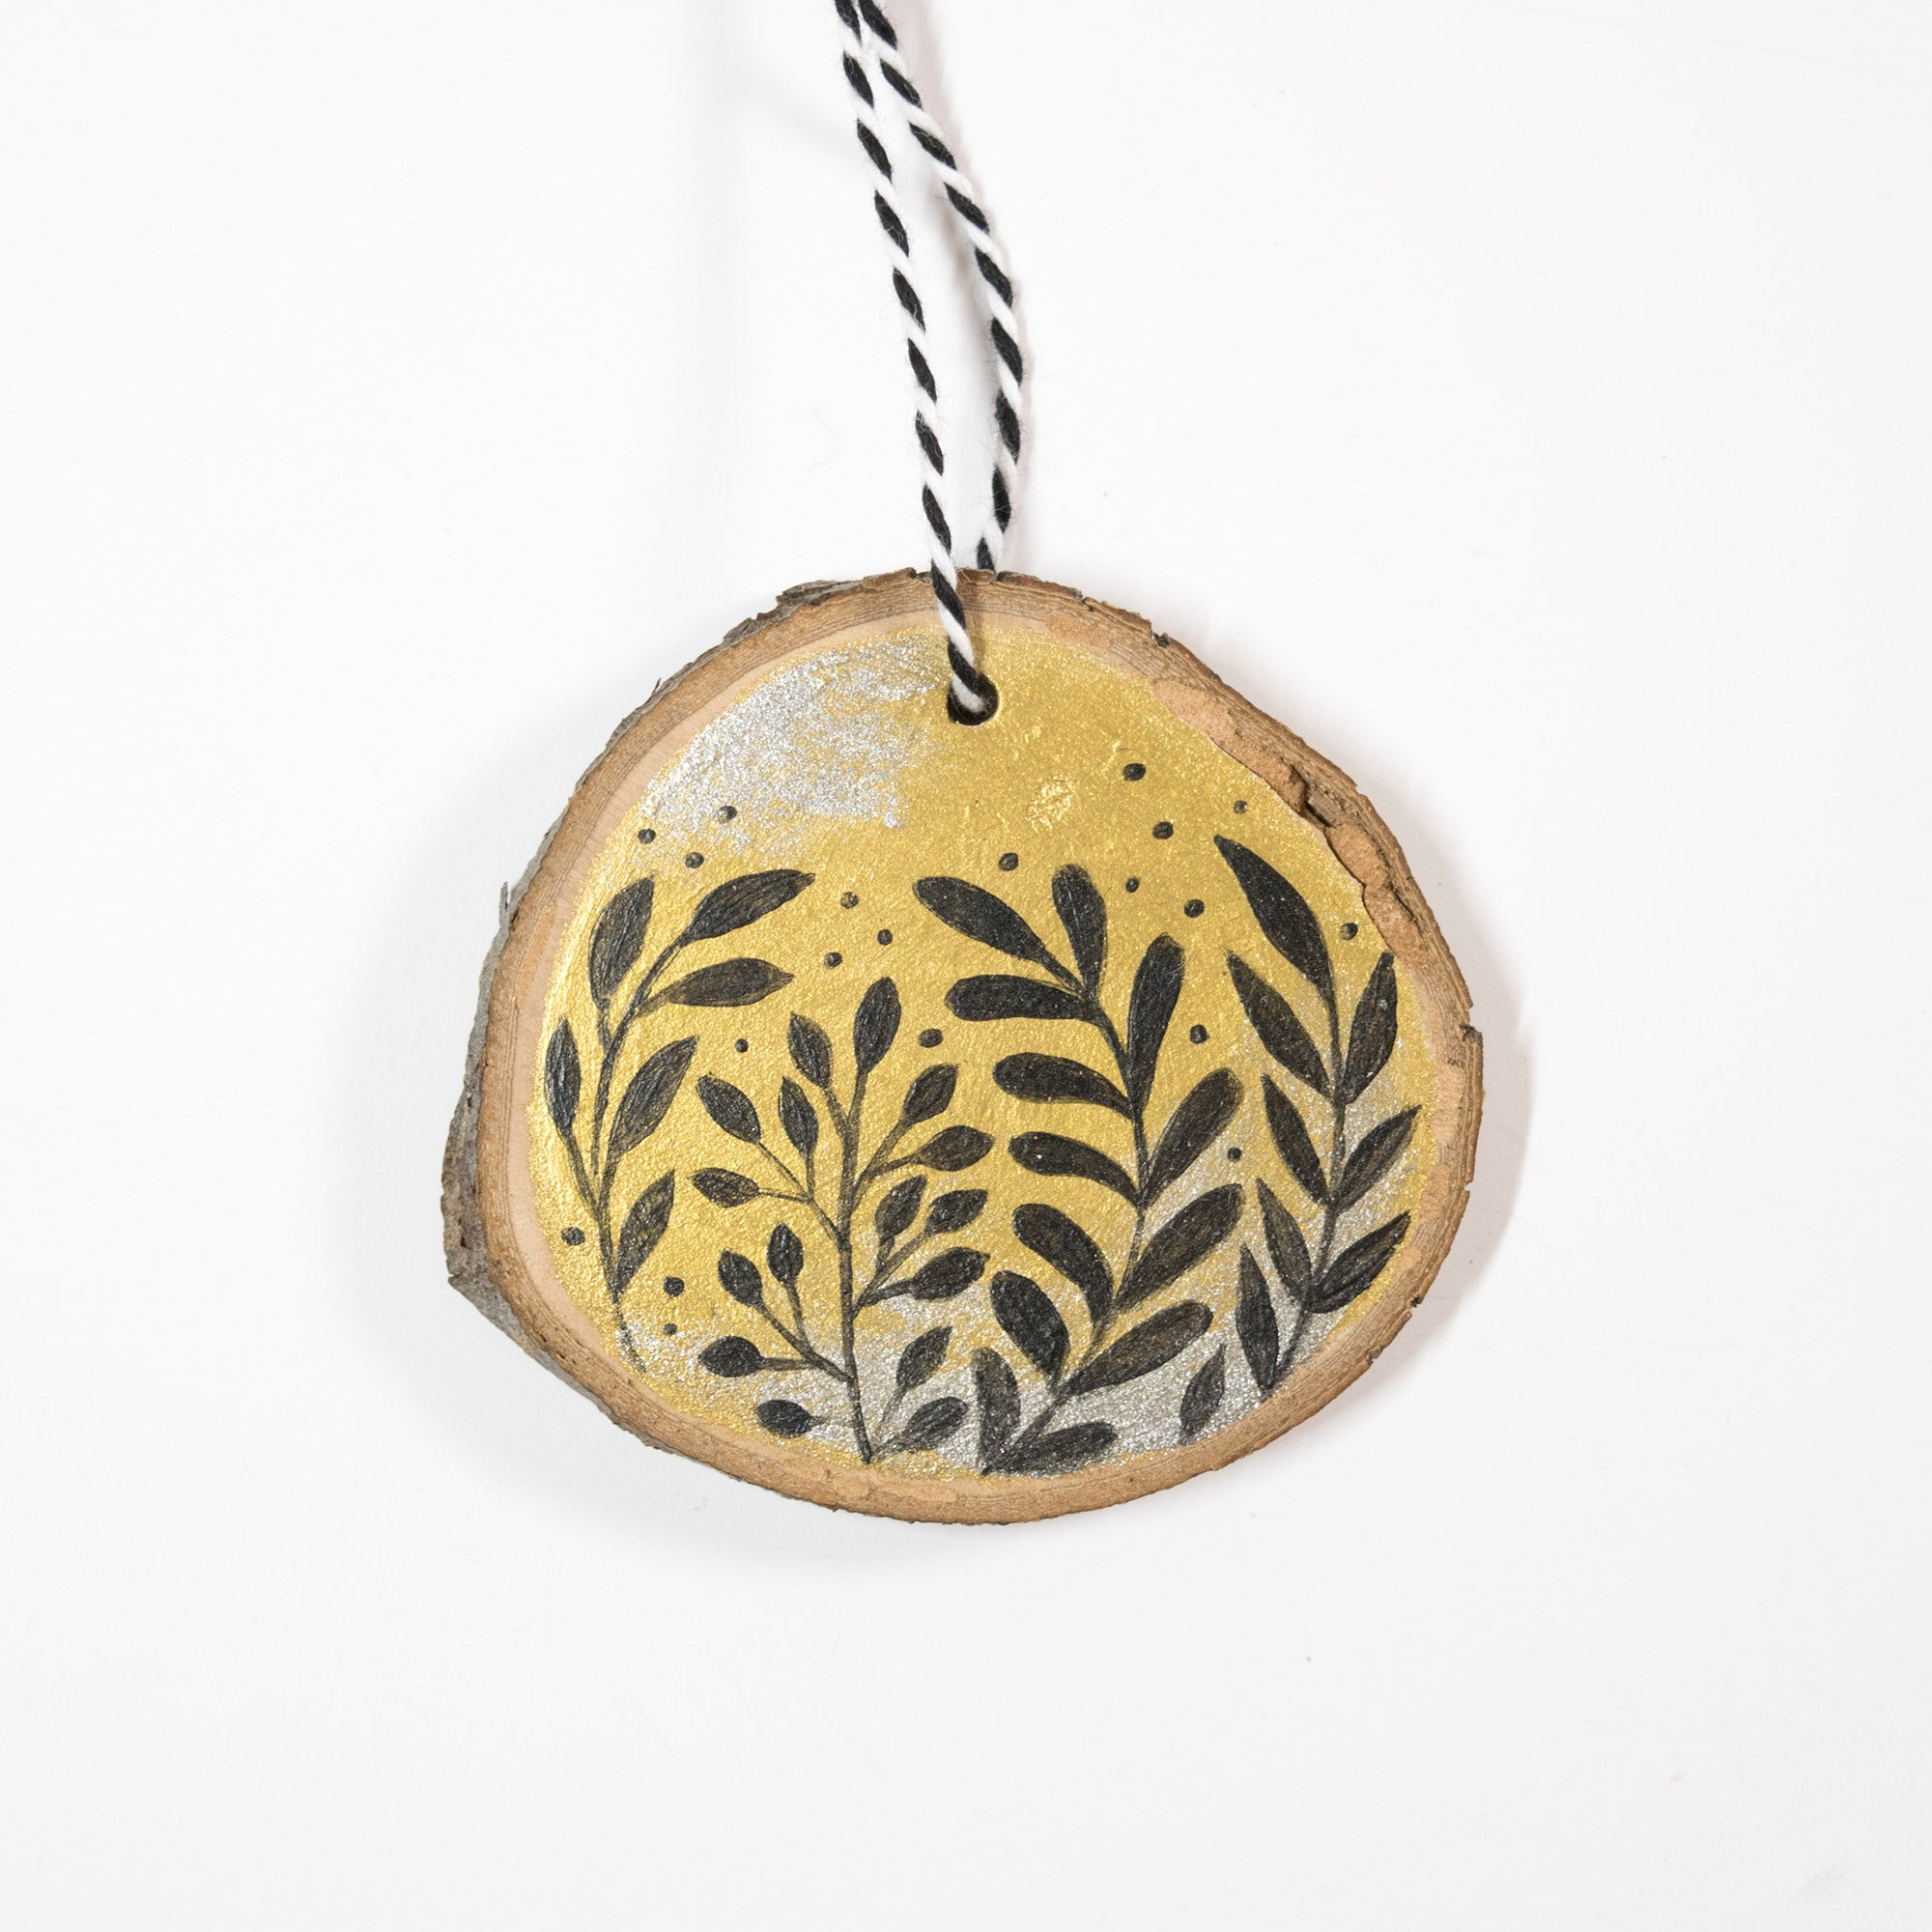 Gold & Silver Leaves - Hand Painted Wood Slice Ornament